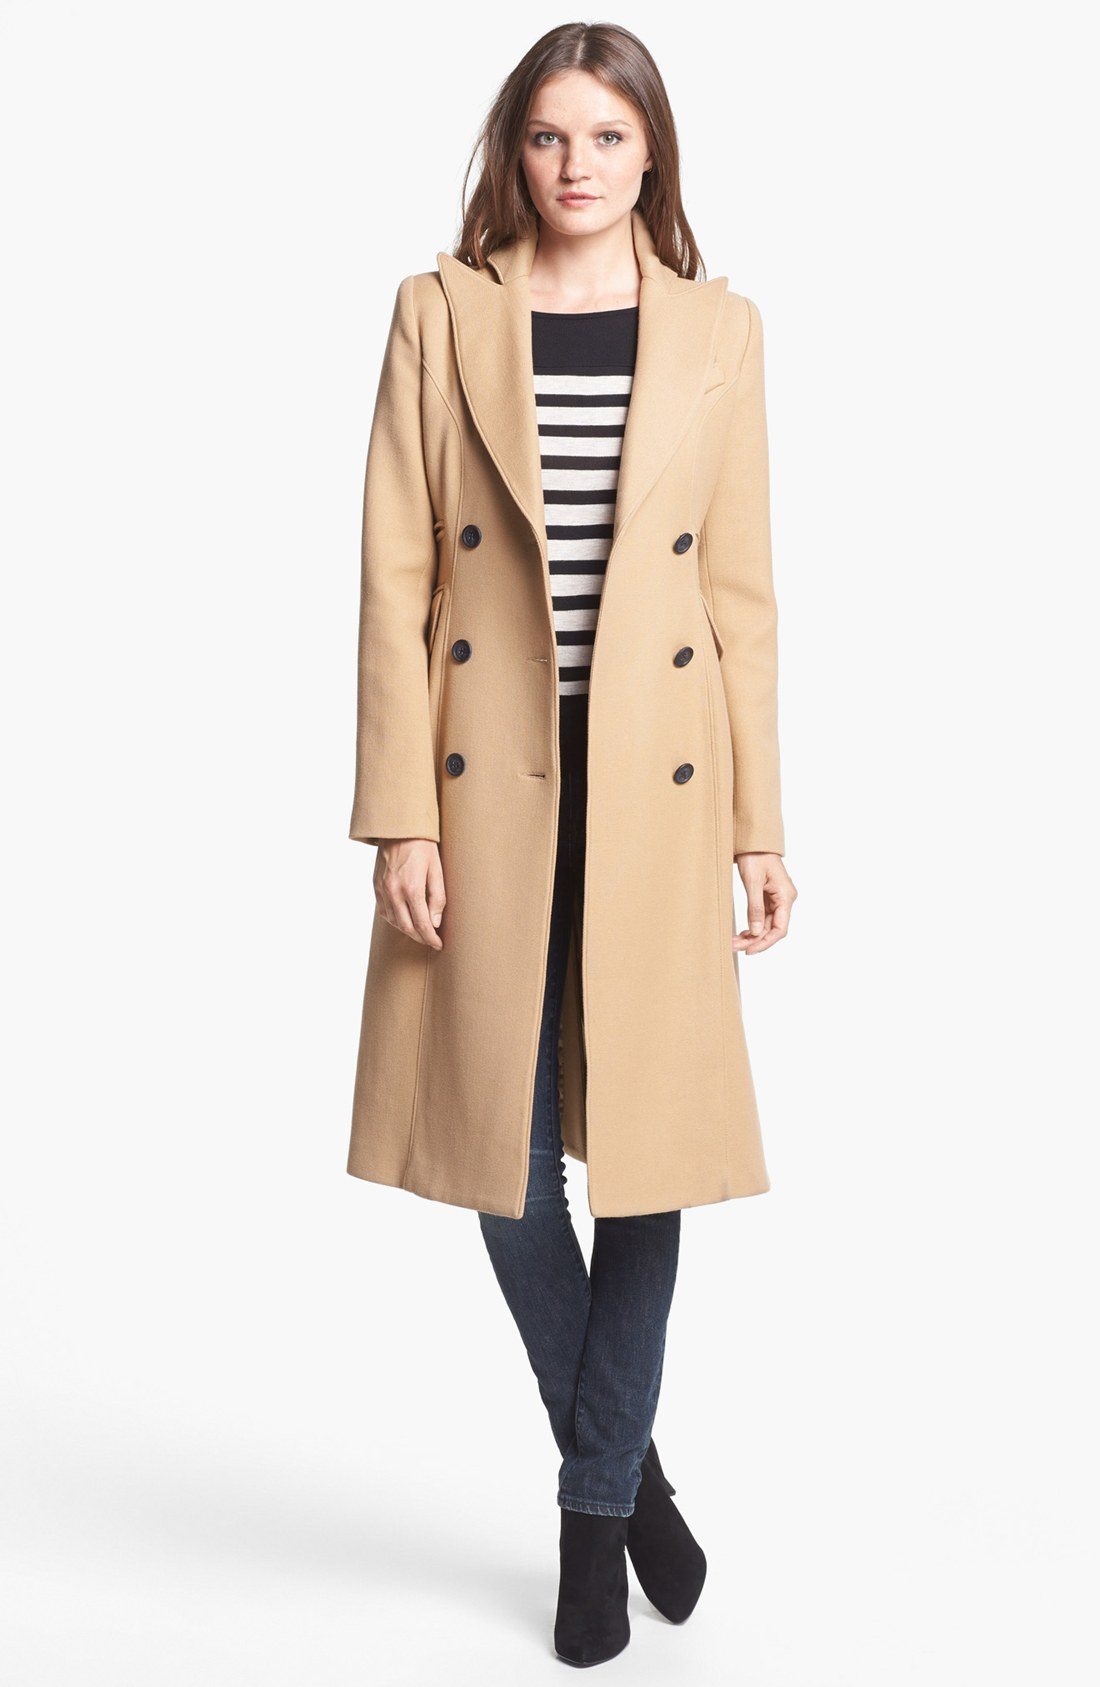 Smythe Long Double Breasted Wool Coat in Natural | Lyst